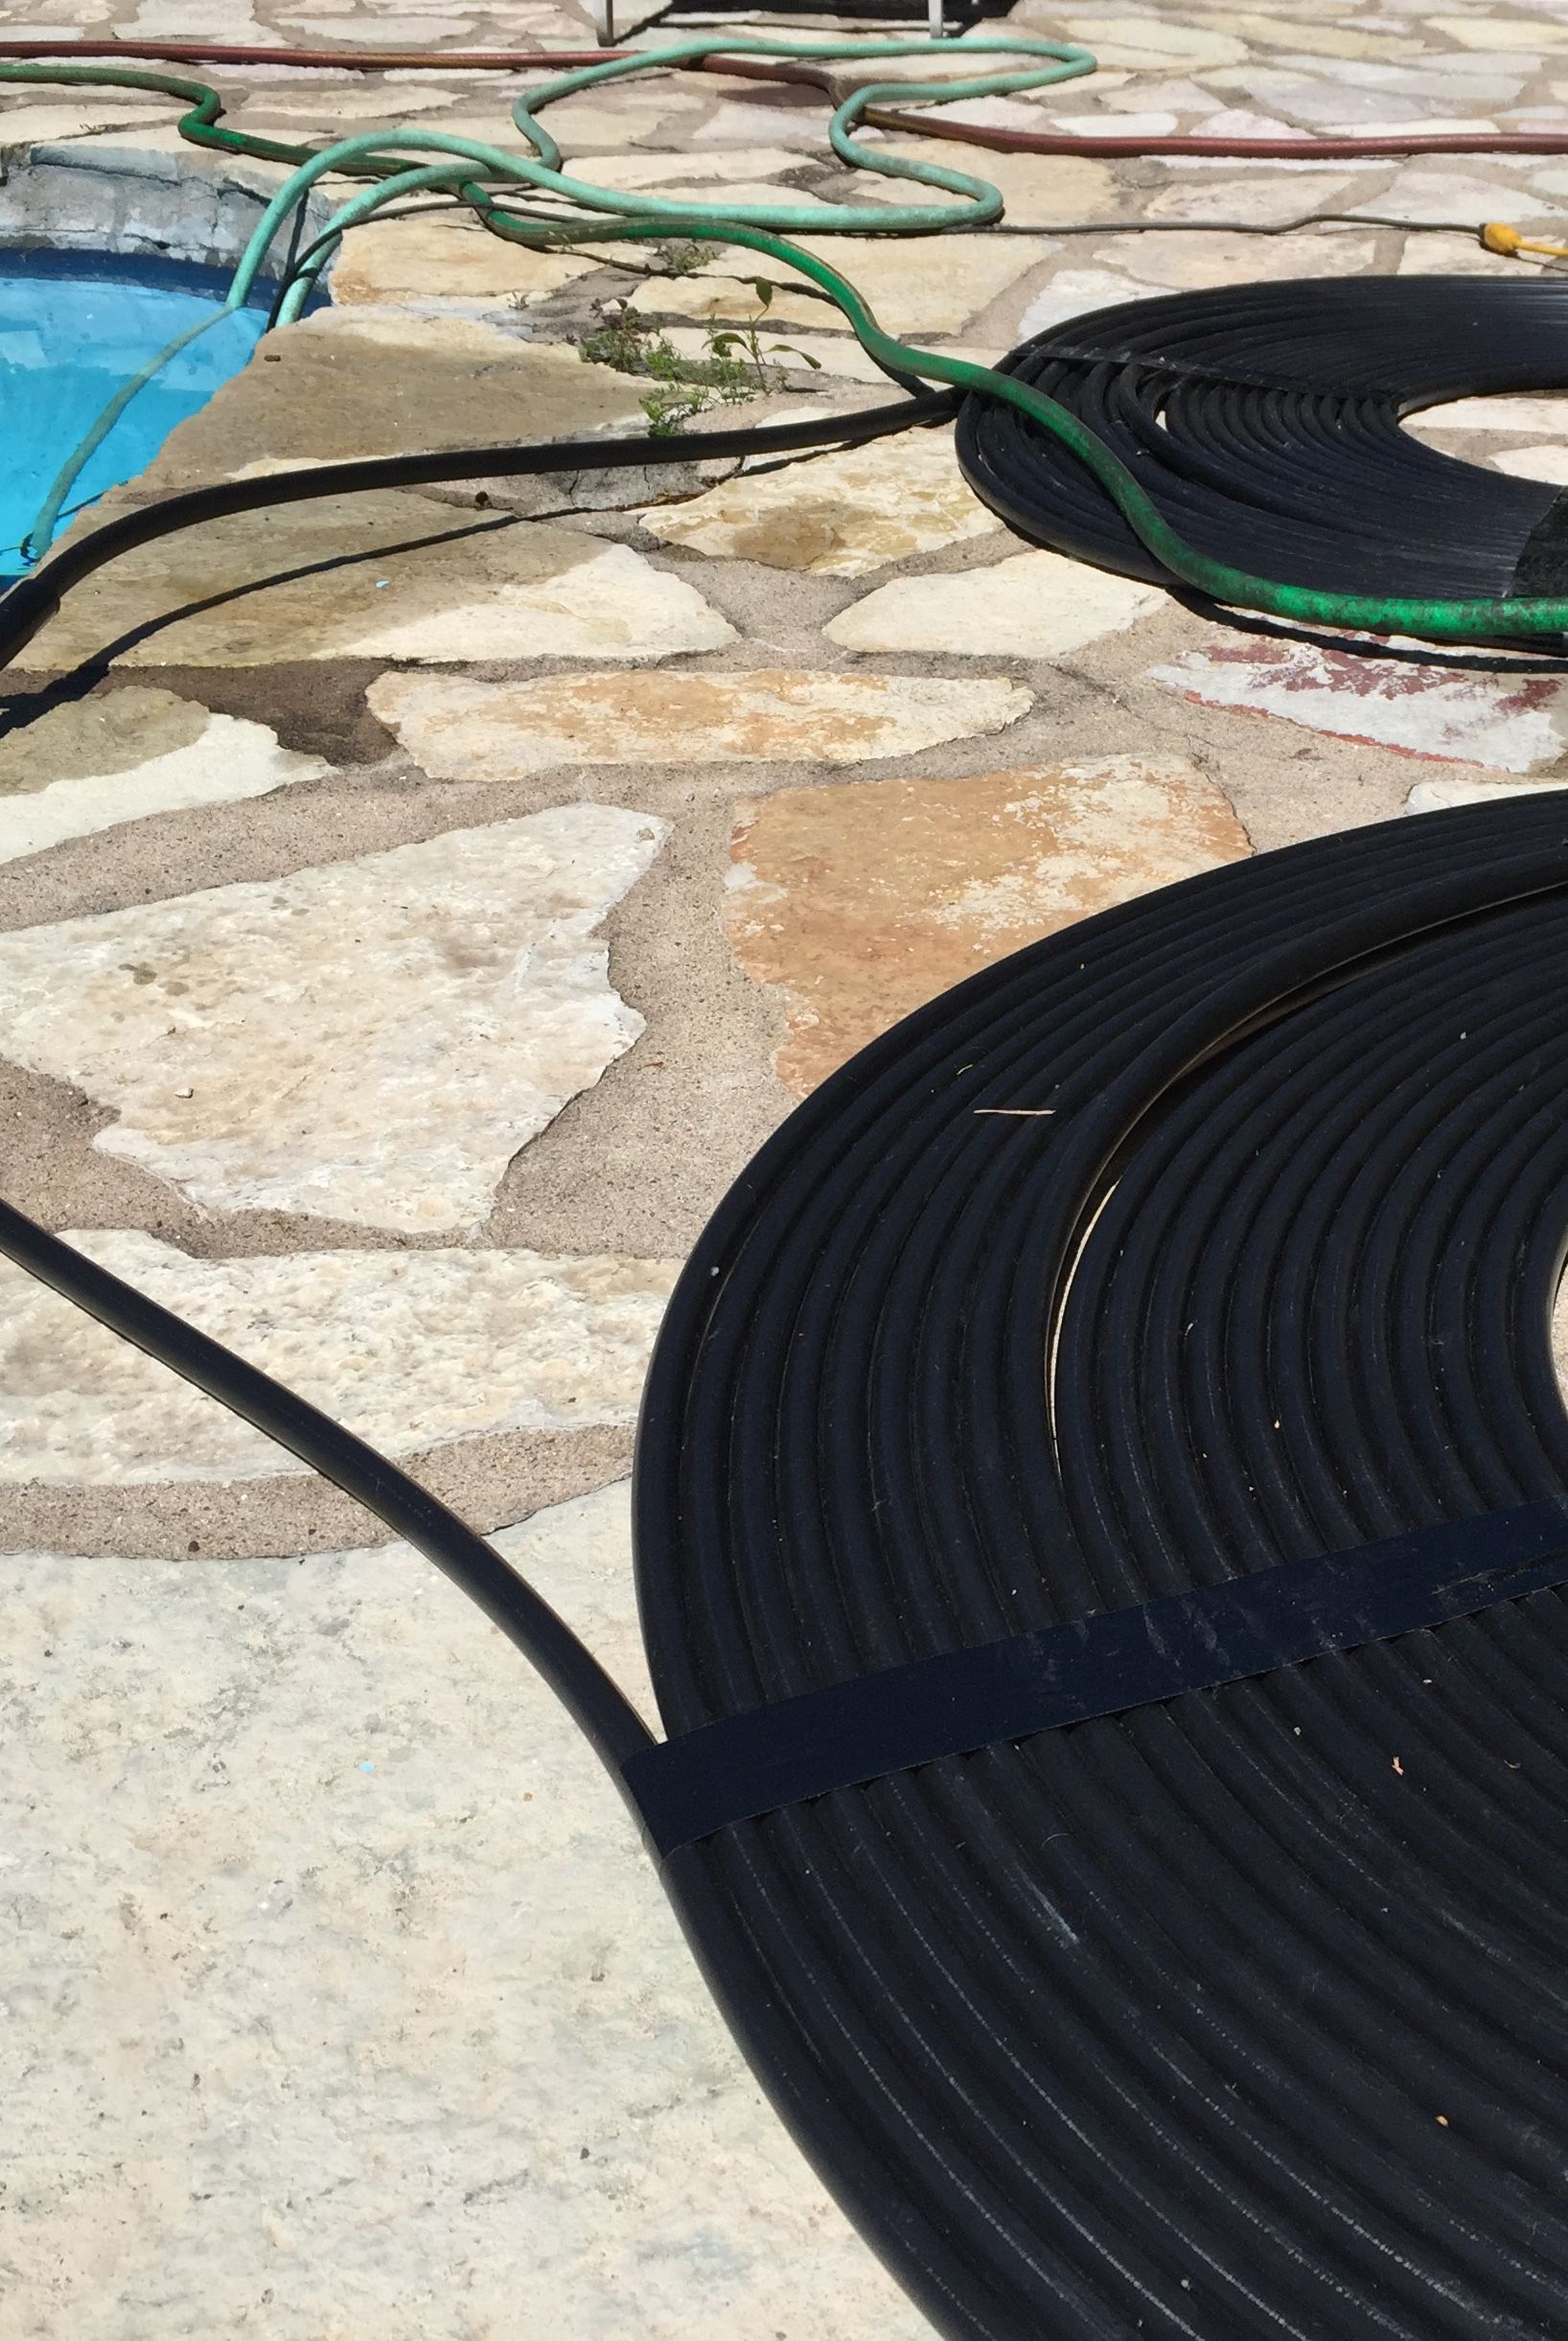 How to make a pool heater for under 100 diy pool heater